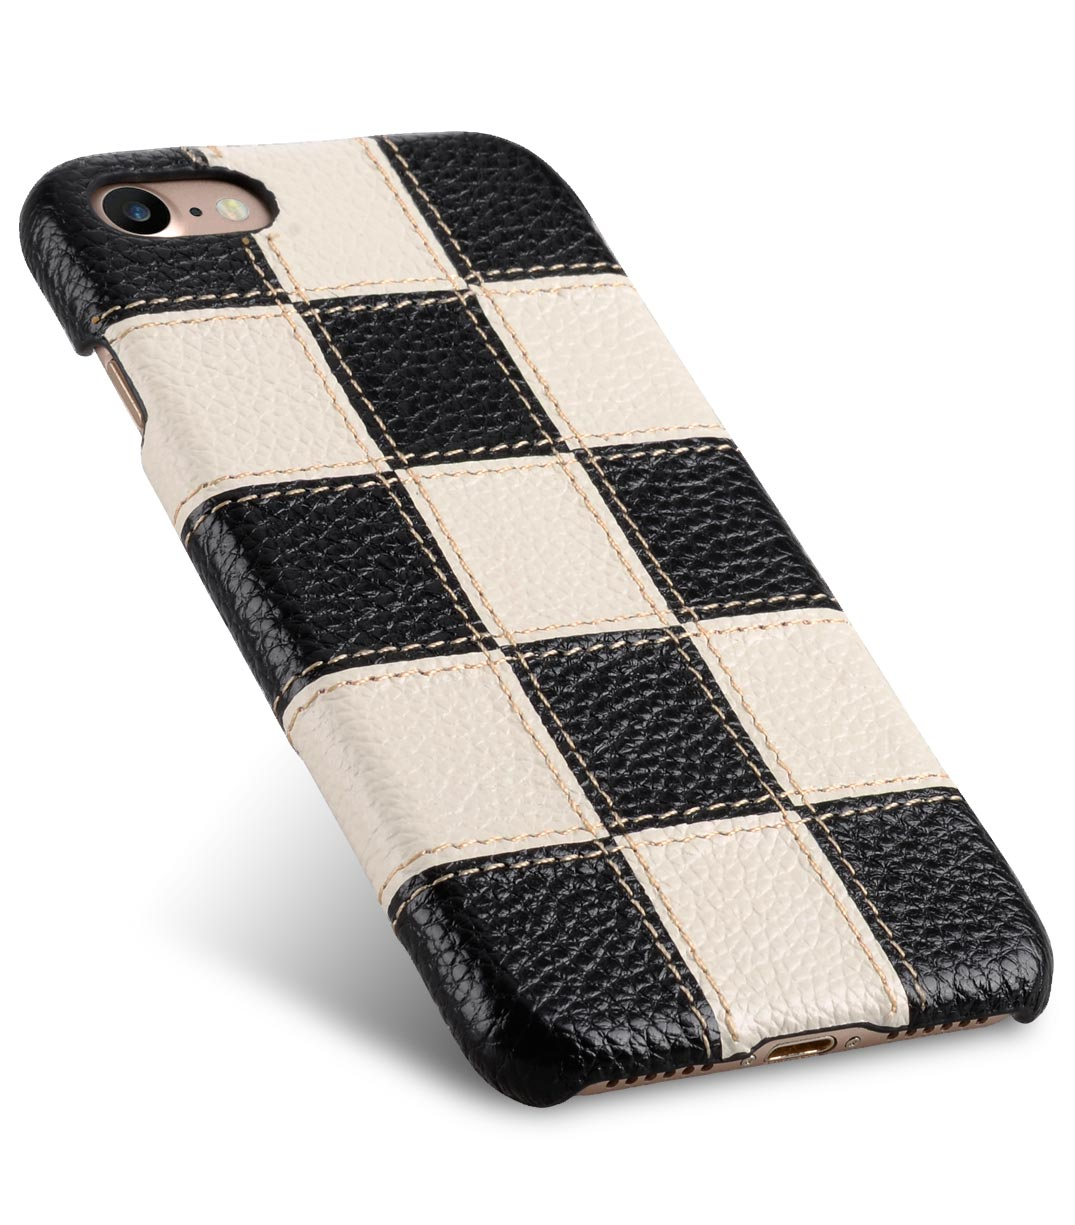 """Melkco Patchwork Series Premium Leather Snap Cover for Apple iPhone 7 / 8 (4.7"""") - Black LC / White LC"""